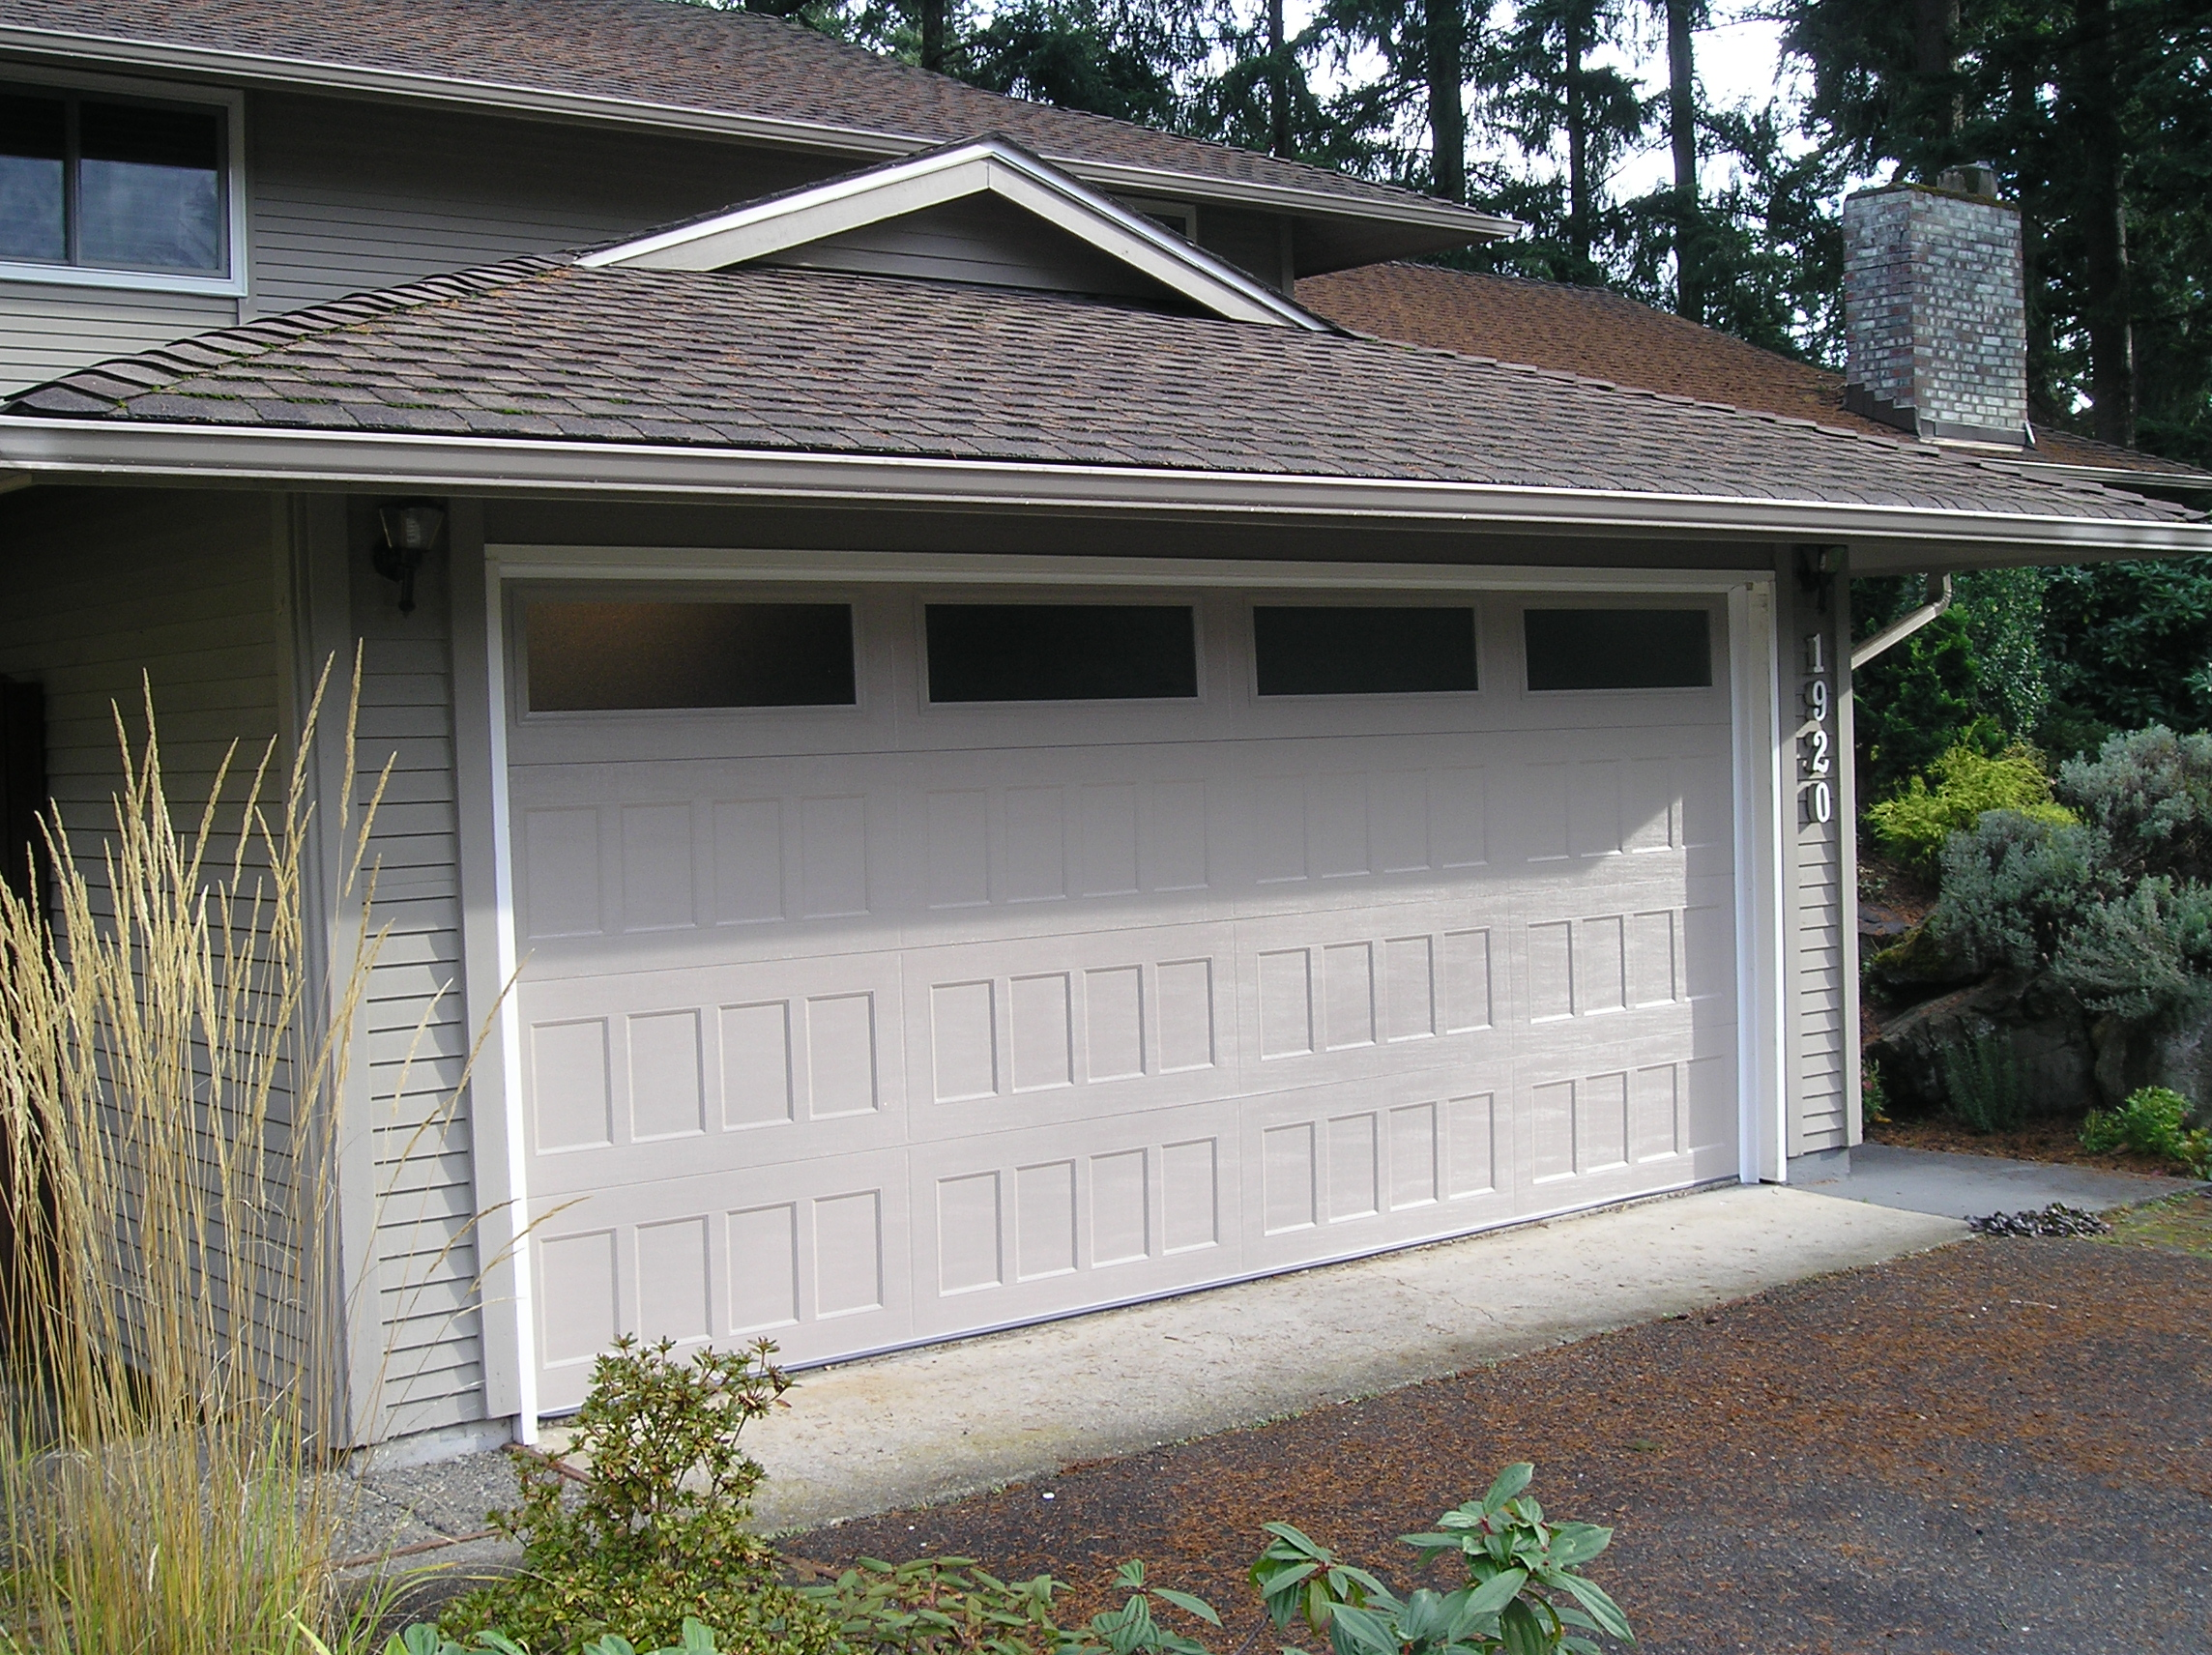 1712 #495D3B Garage Door Lube Tune Up Precision Door Service $ 399 For A Pds270  save image Precision Entry Doors 45772288